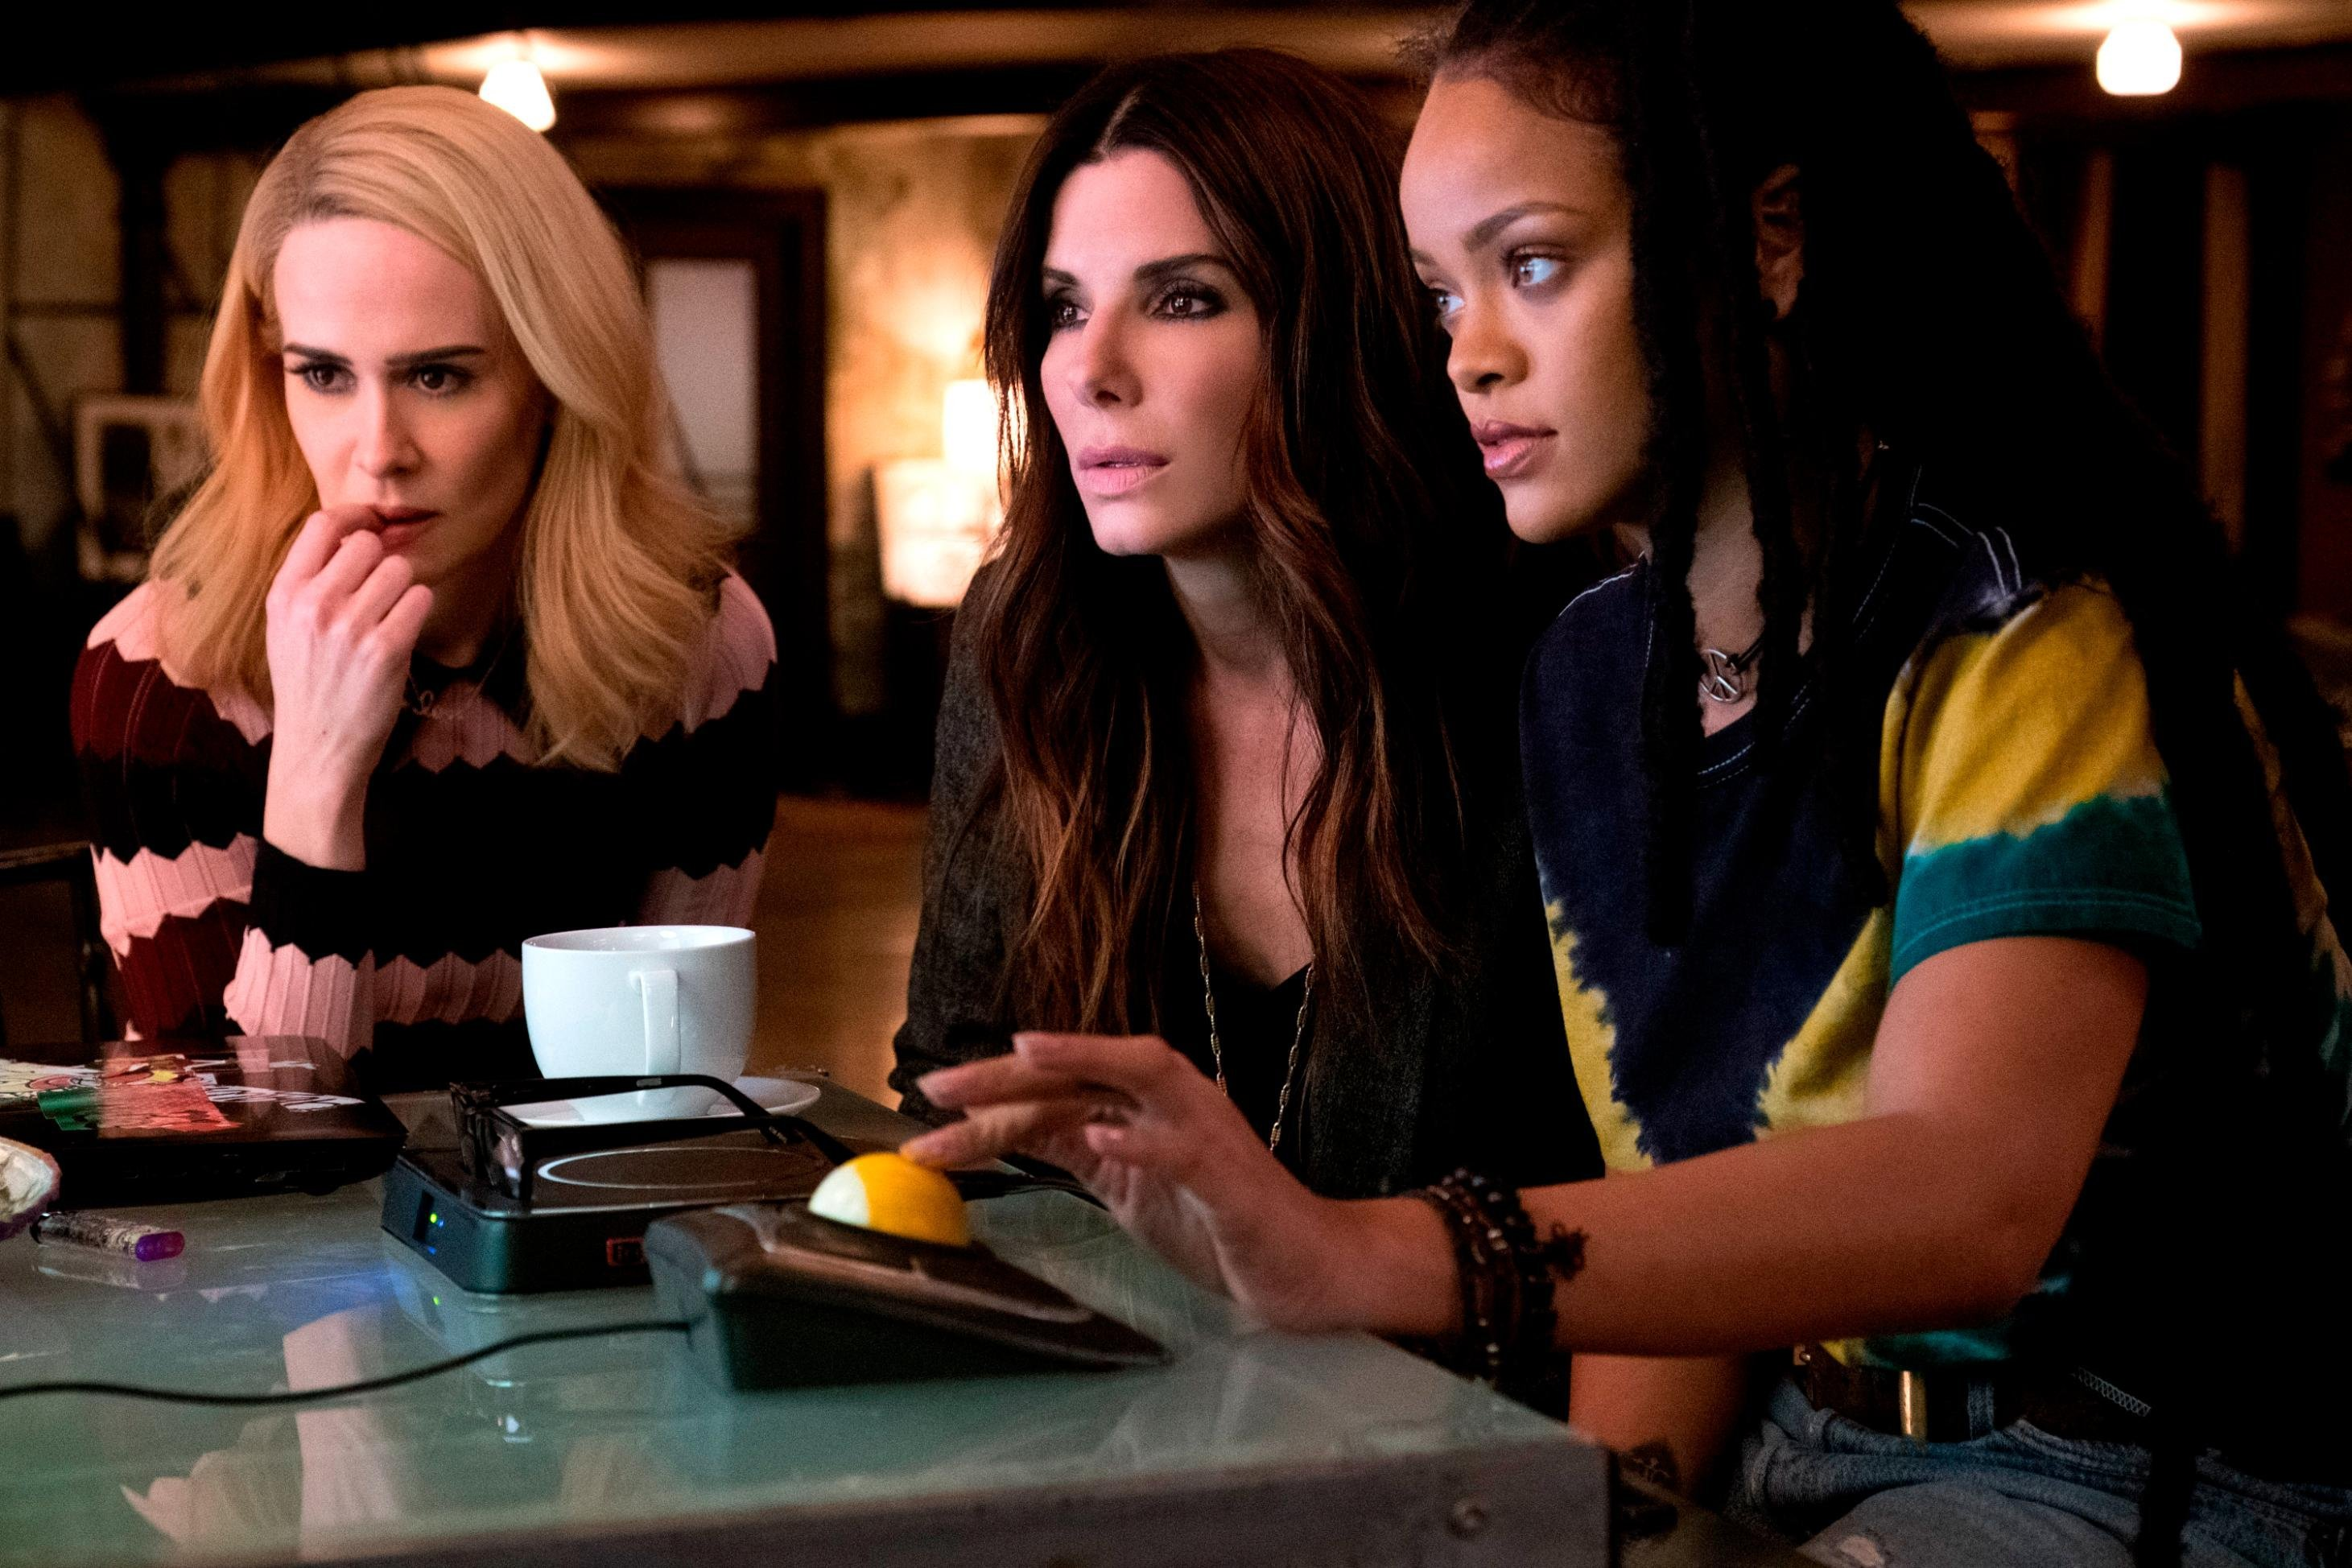 'OCEAN'S 8' DELIVERS PLAYFUL ALL-FEMALE SPIN ON HEIST CAPER